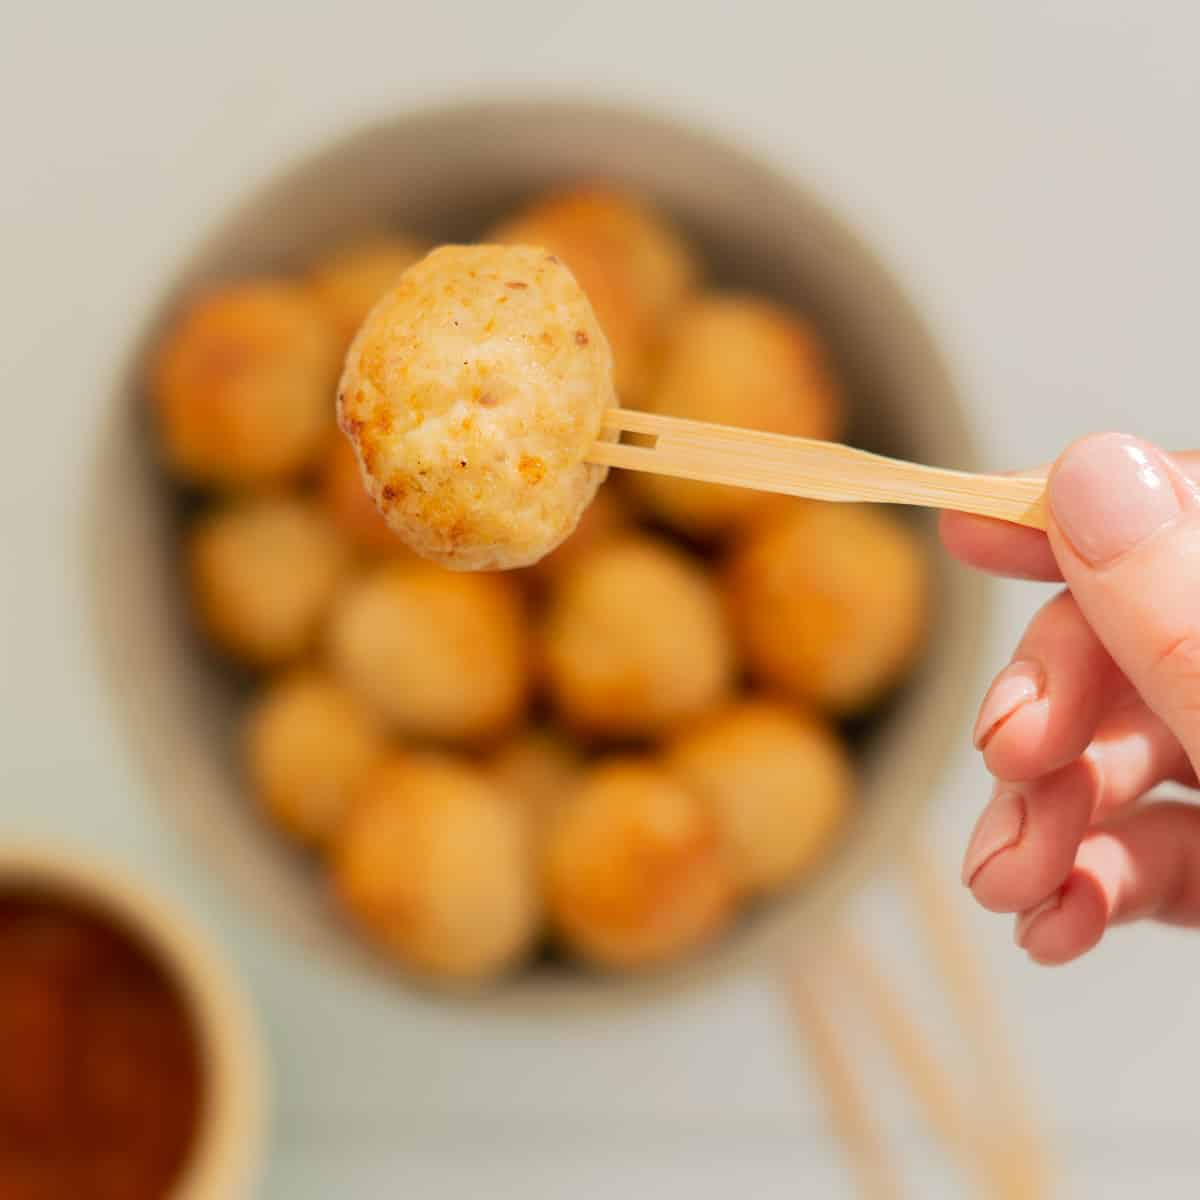 Chicken meatball on a bamboo fork being held above a bowl of meatballs